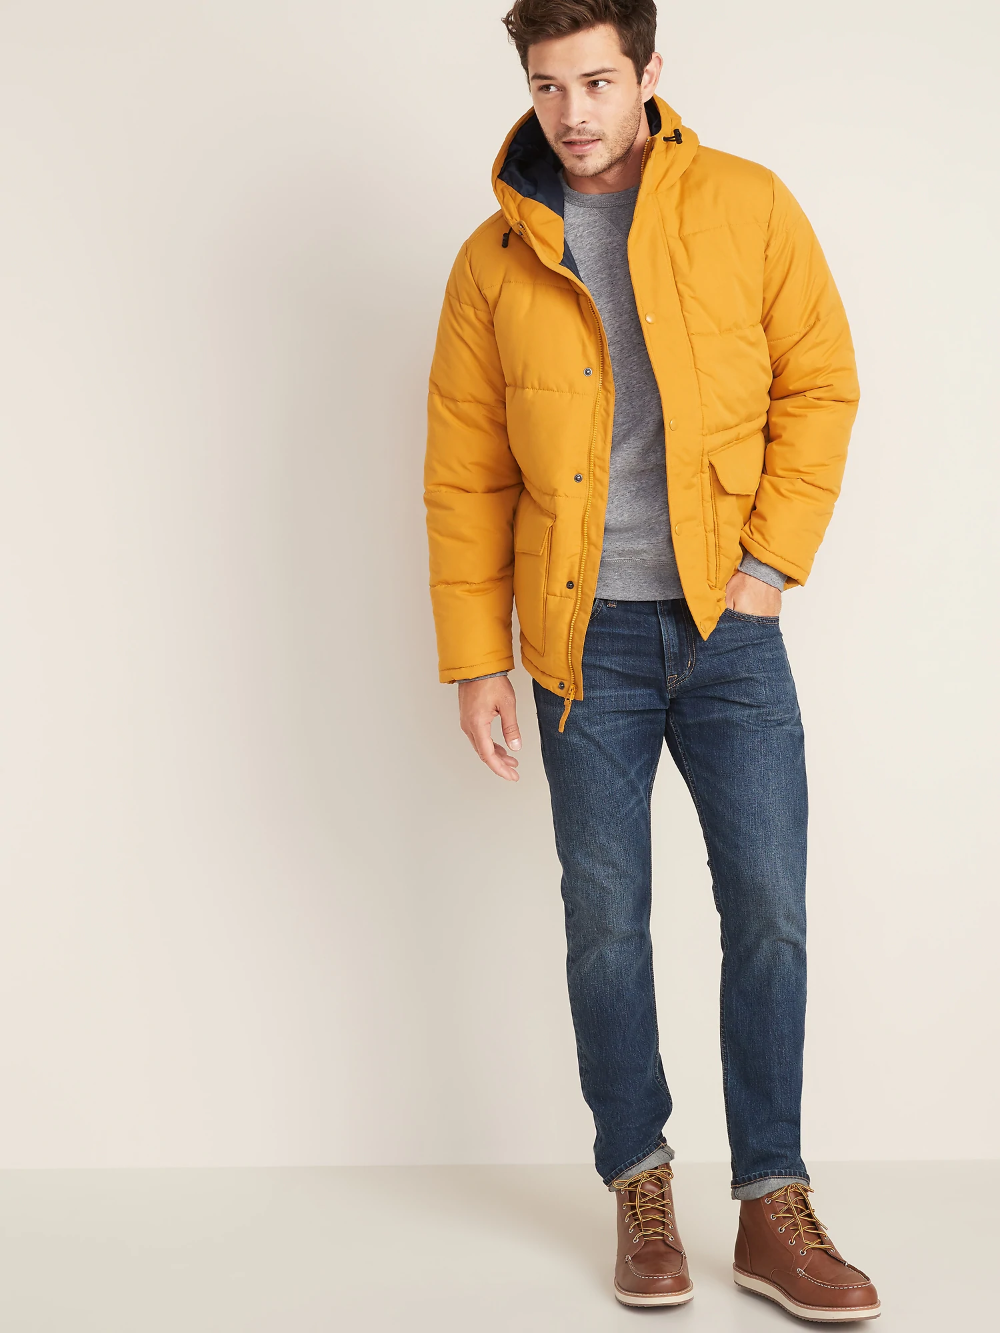 Water Resistant Hooded Puffer Jacket For Men Old Navy Mens Jackets Mens Street Style Old Navy [ 1333 x 1000 Pixel ]